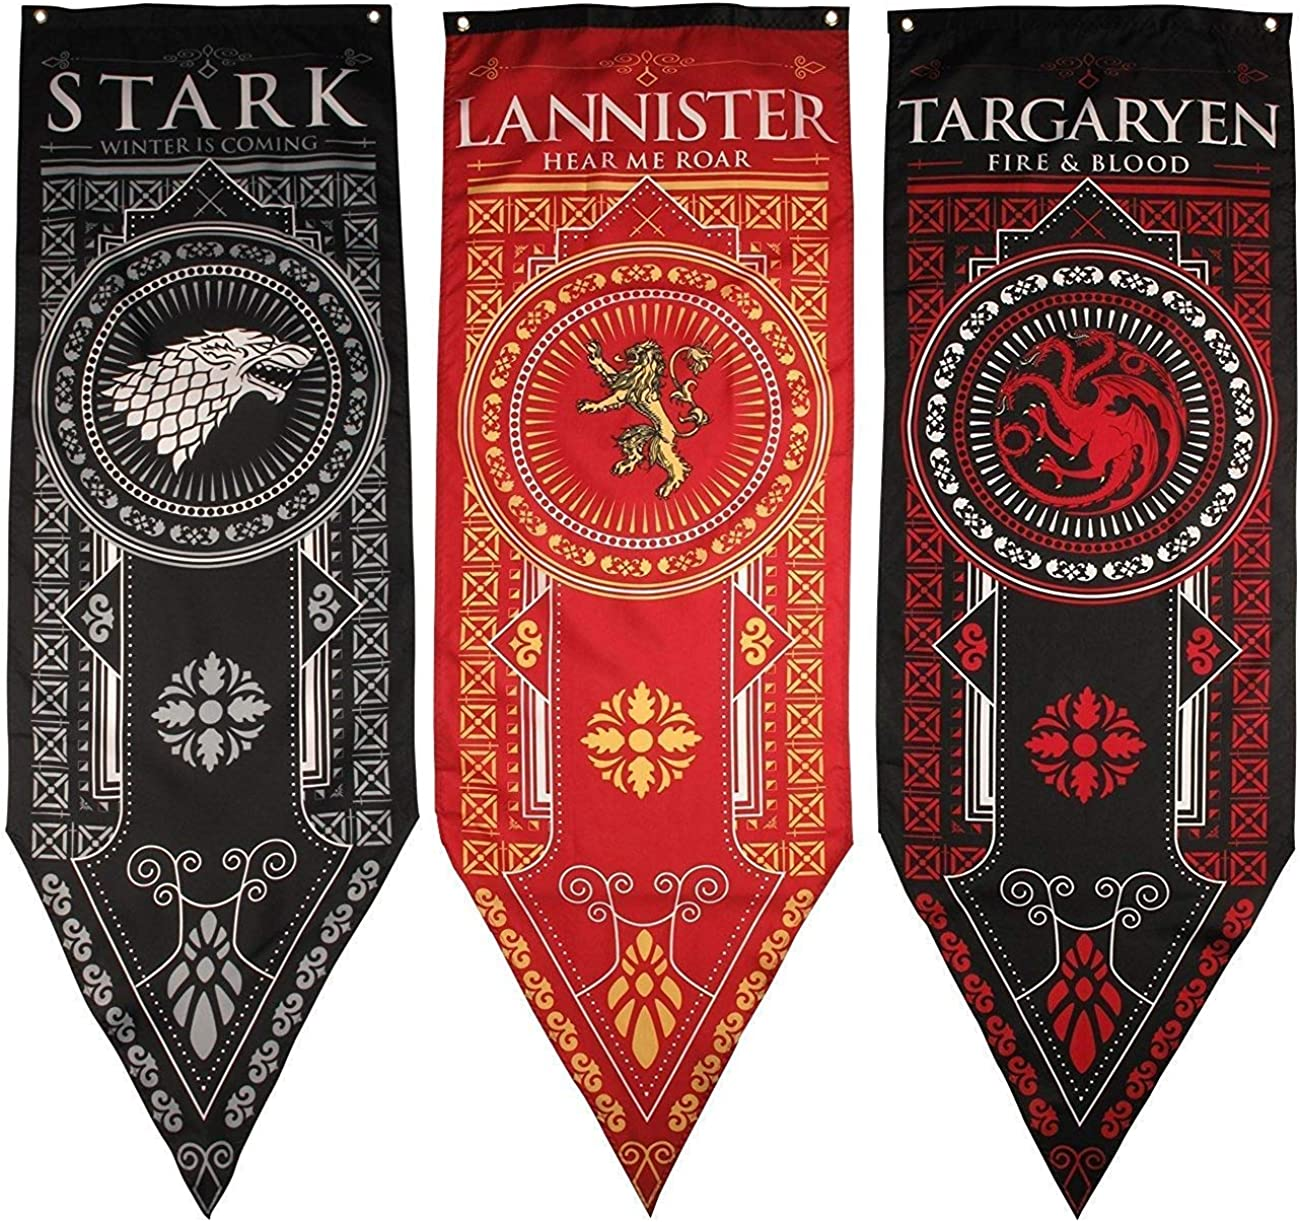 Game of Thrones House Banner 3pk, House Stark, Targaryen, Lannister